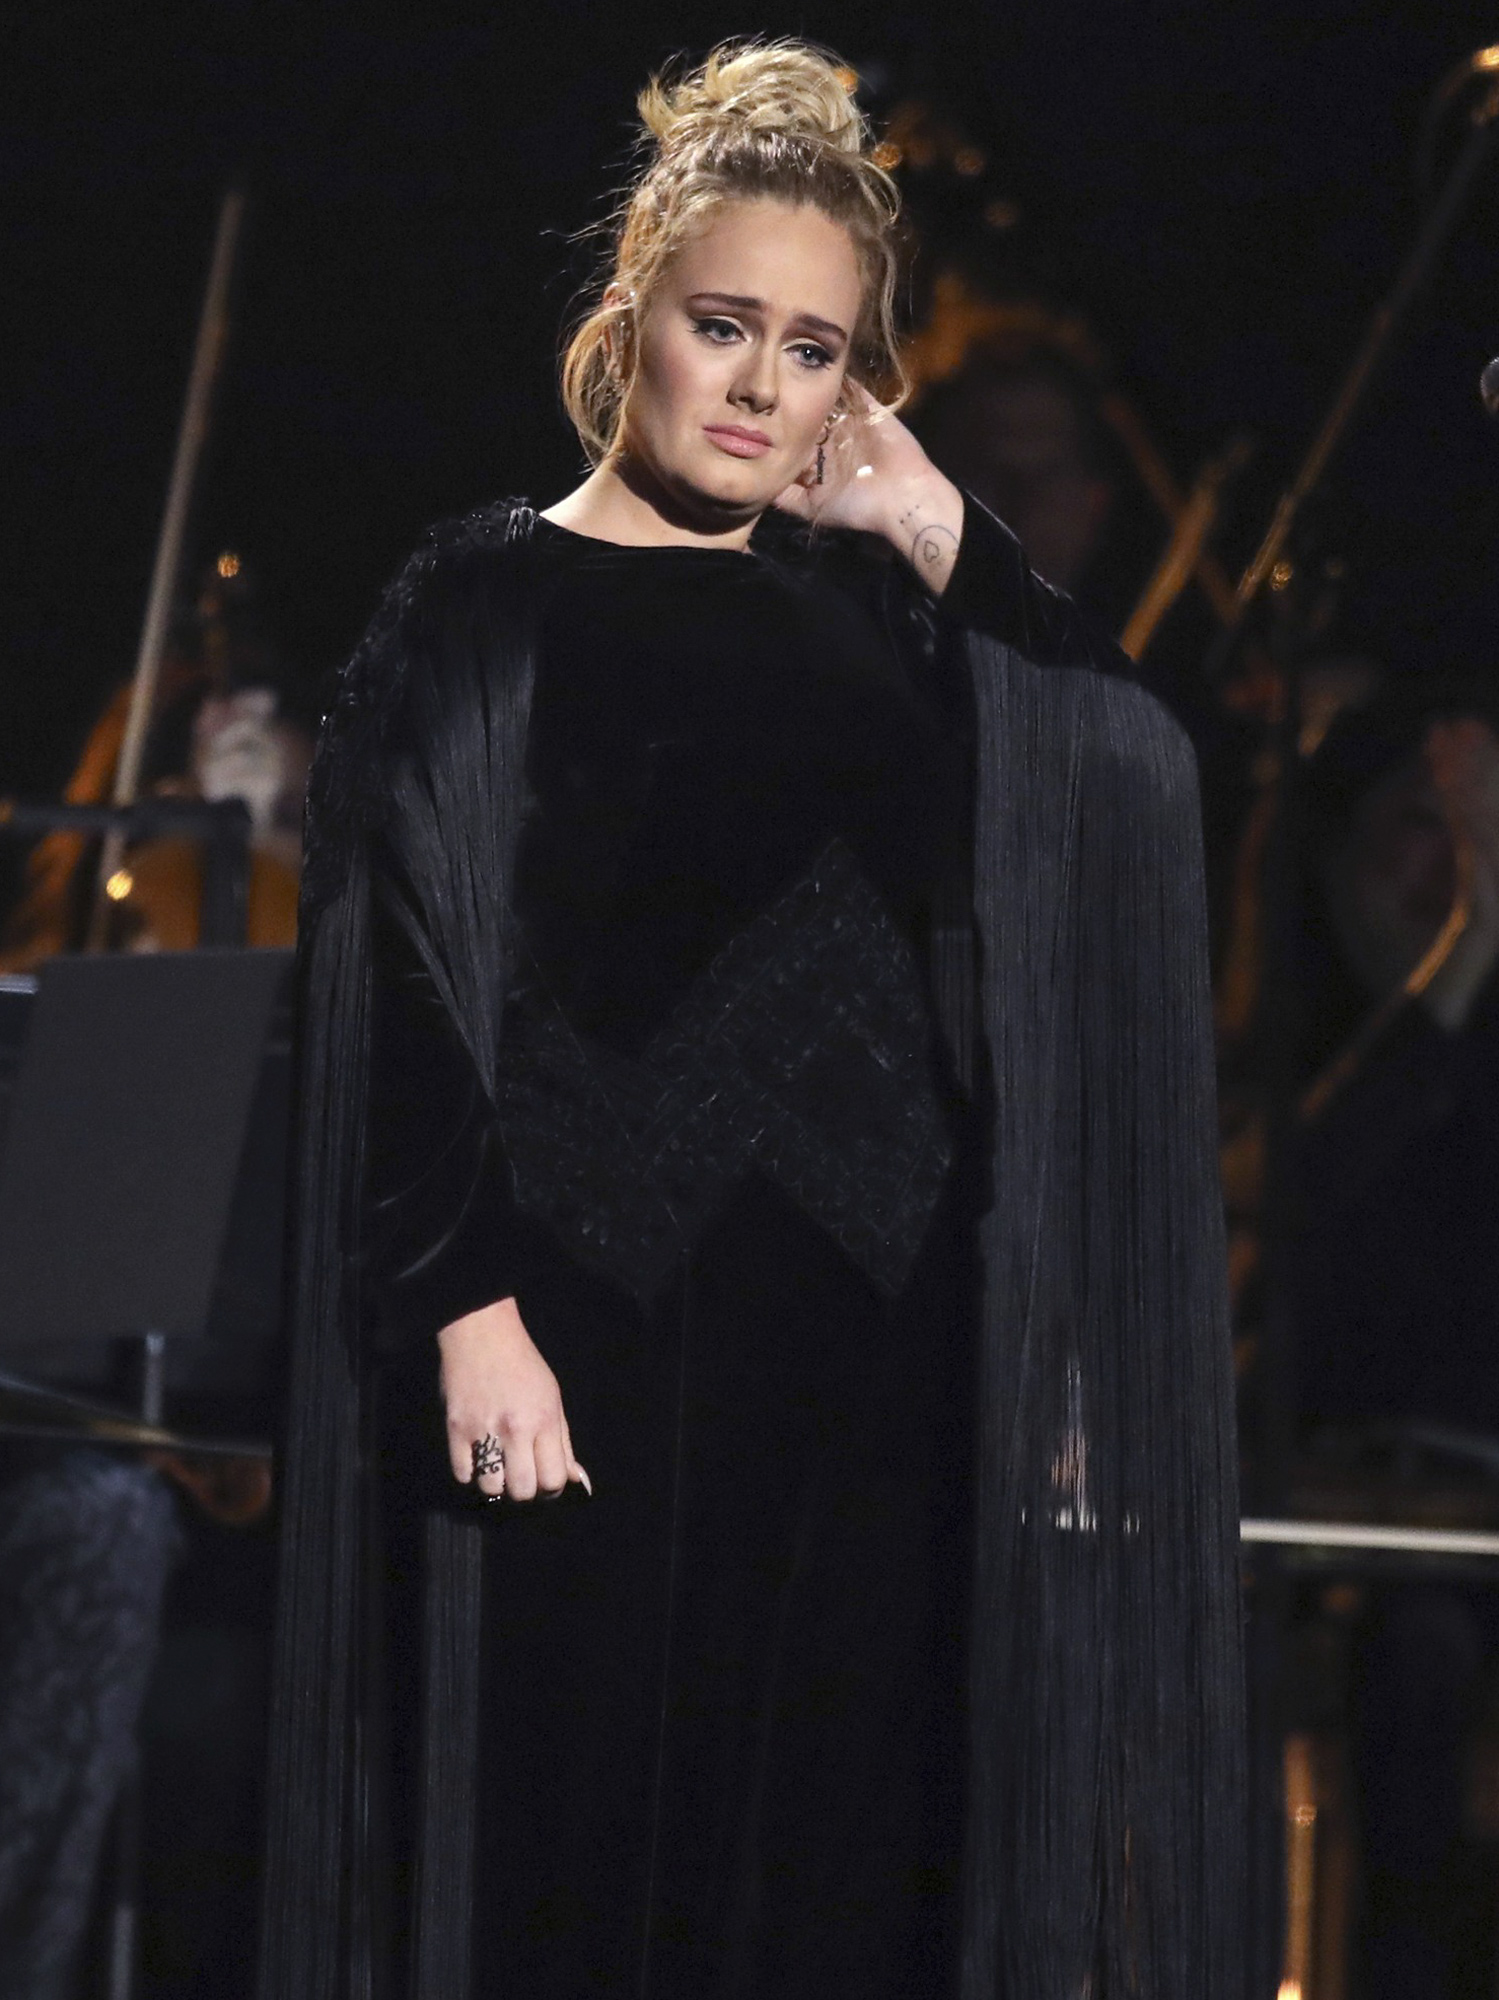 Adele reacts after a performance tribute to George Michael at the 59th annual Grammy Awards on Sunday, Feb. 12, 2017, in Los Angeles. (Photo by Matt Sayles/Invision/AP)